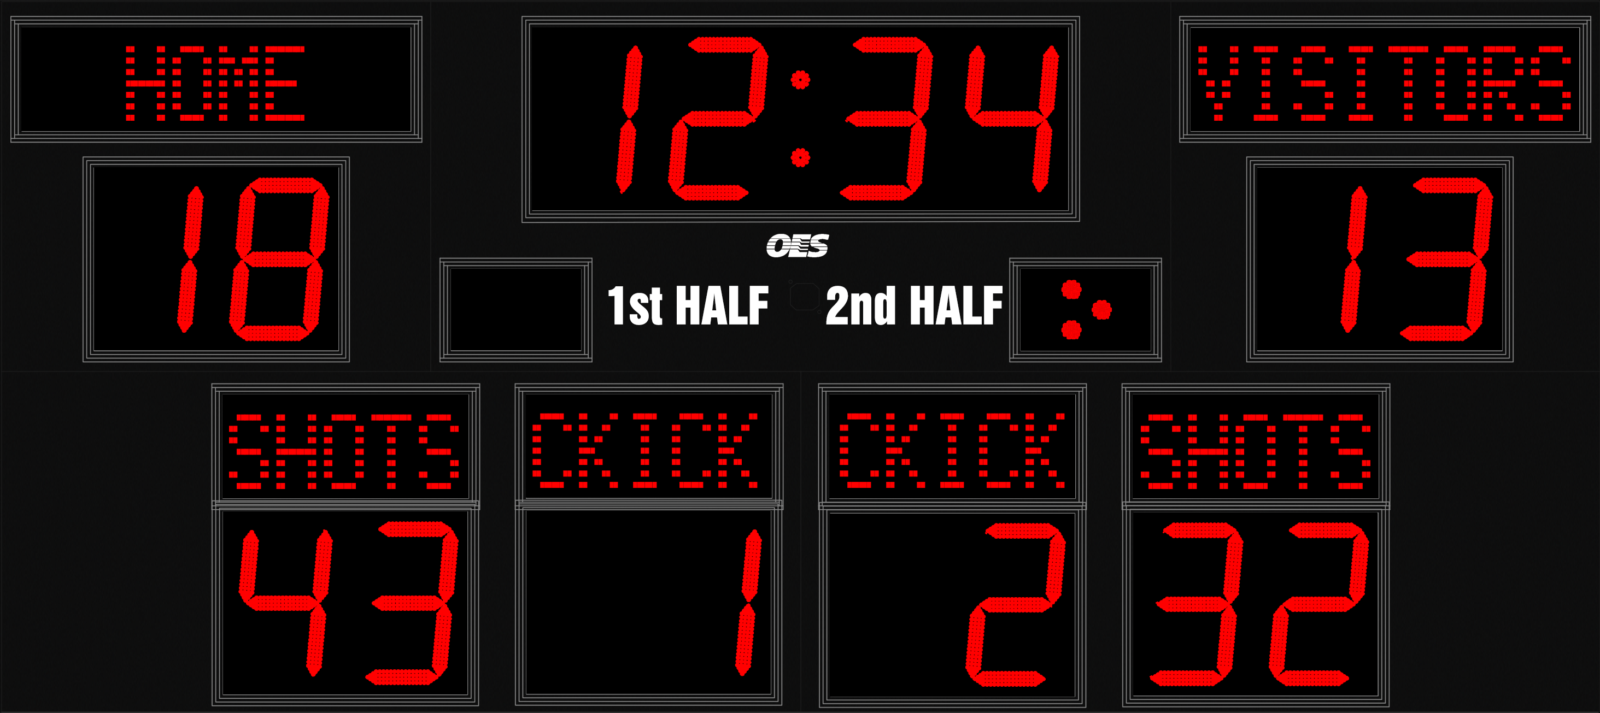 black scoreboard with red numbers